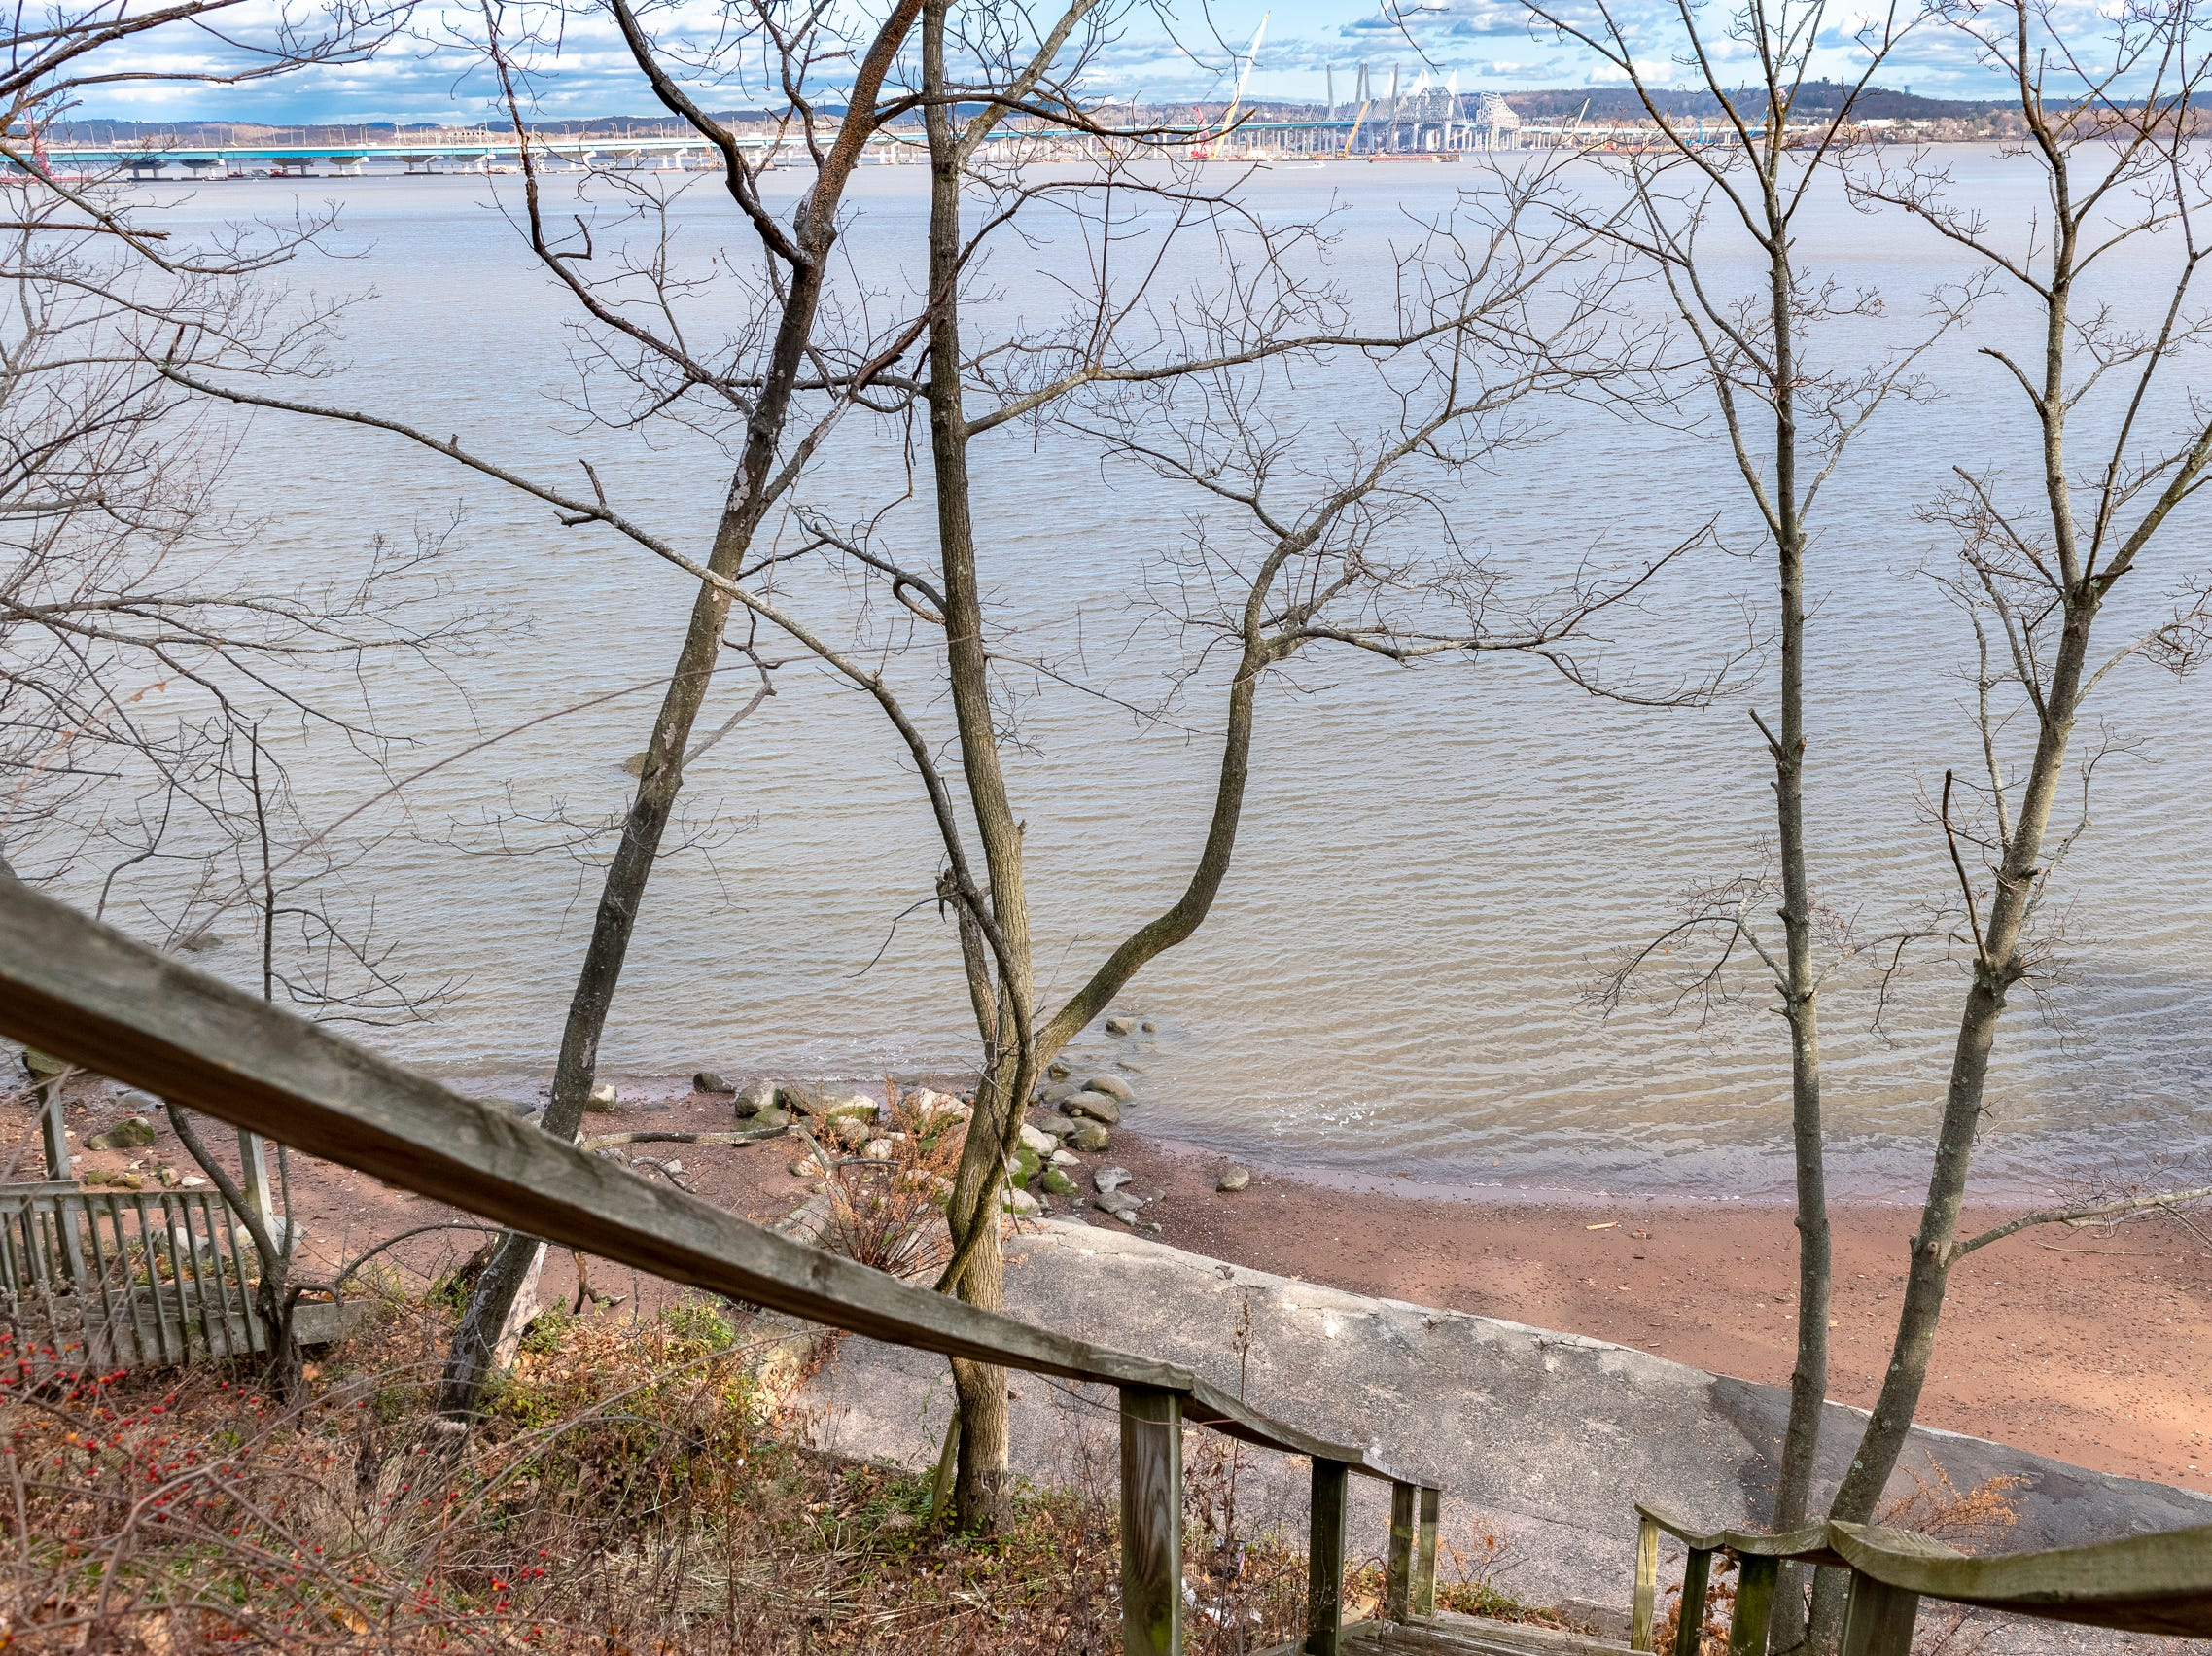 Overledge in Grand View-on-Hudson was built in 1916 from plans that were originally lost on the sinking of the Titanic.